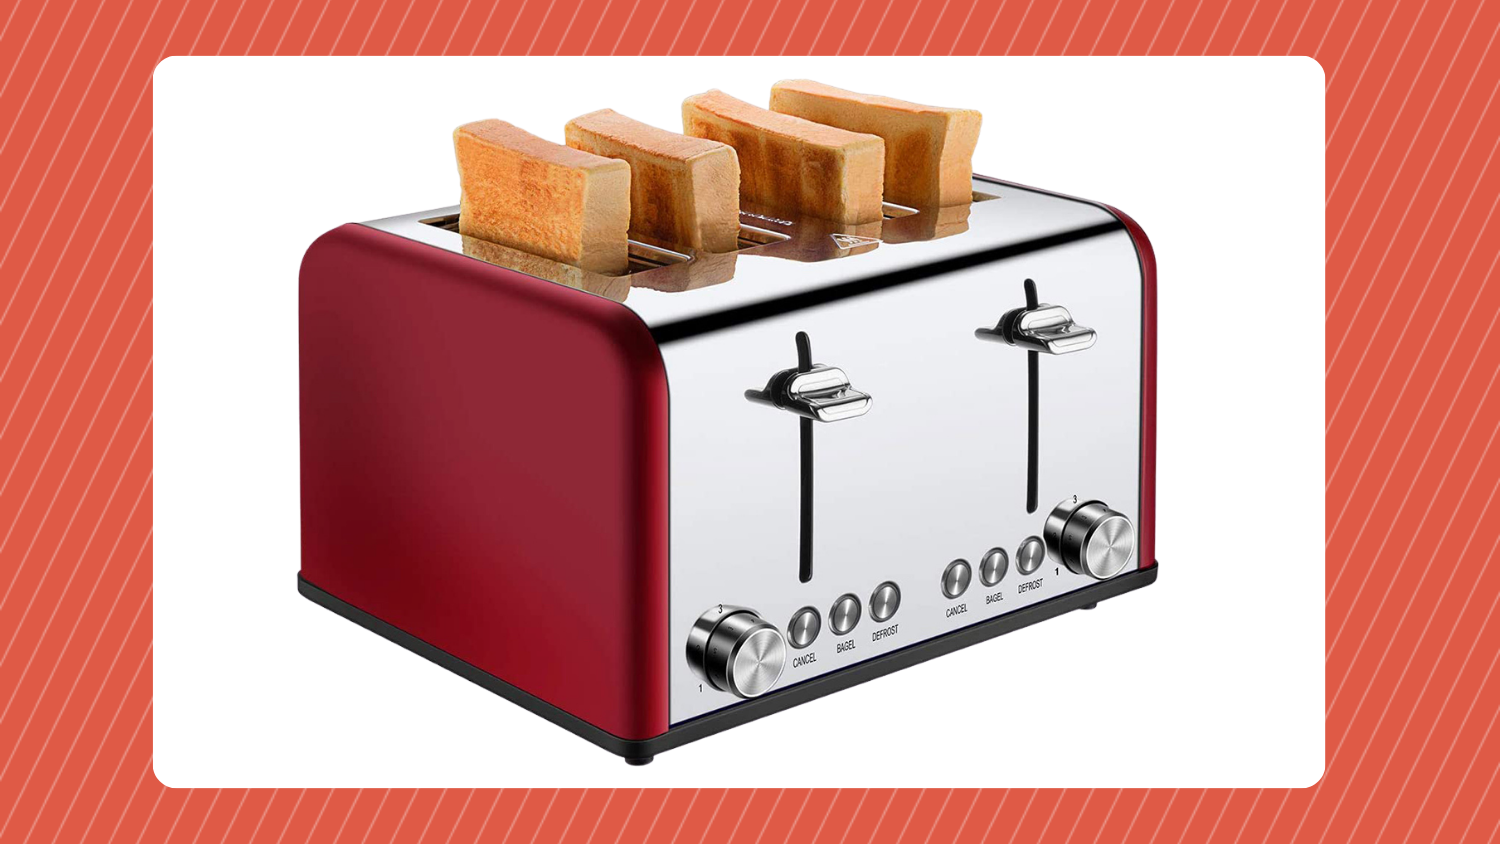 These 10 Toasters Are the Secret to Perfectly Golden Bread